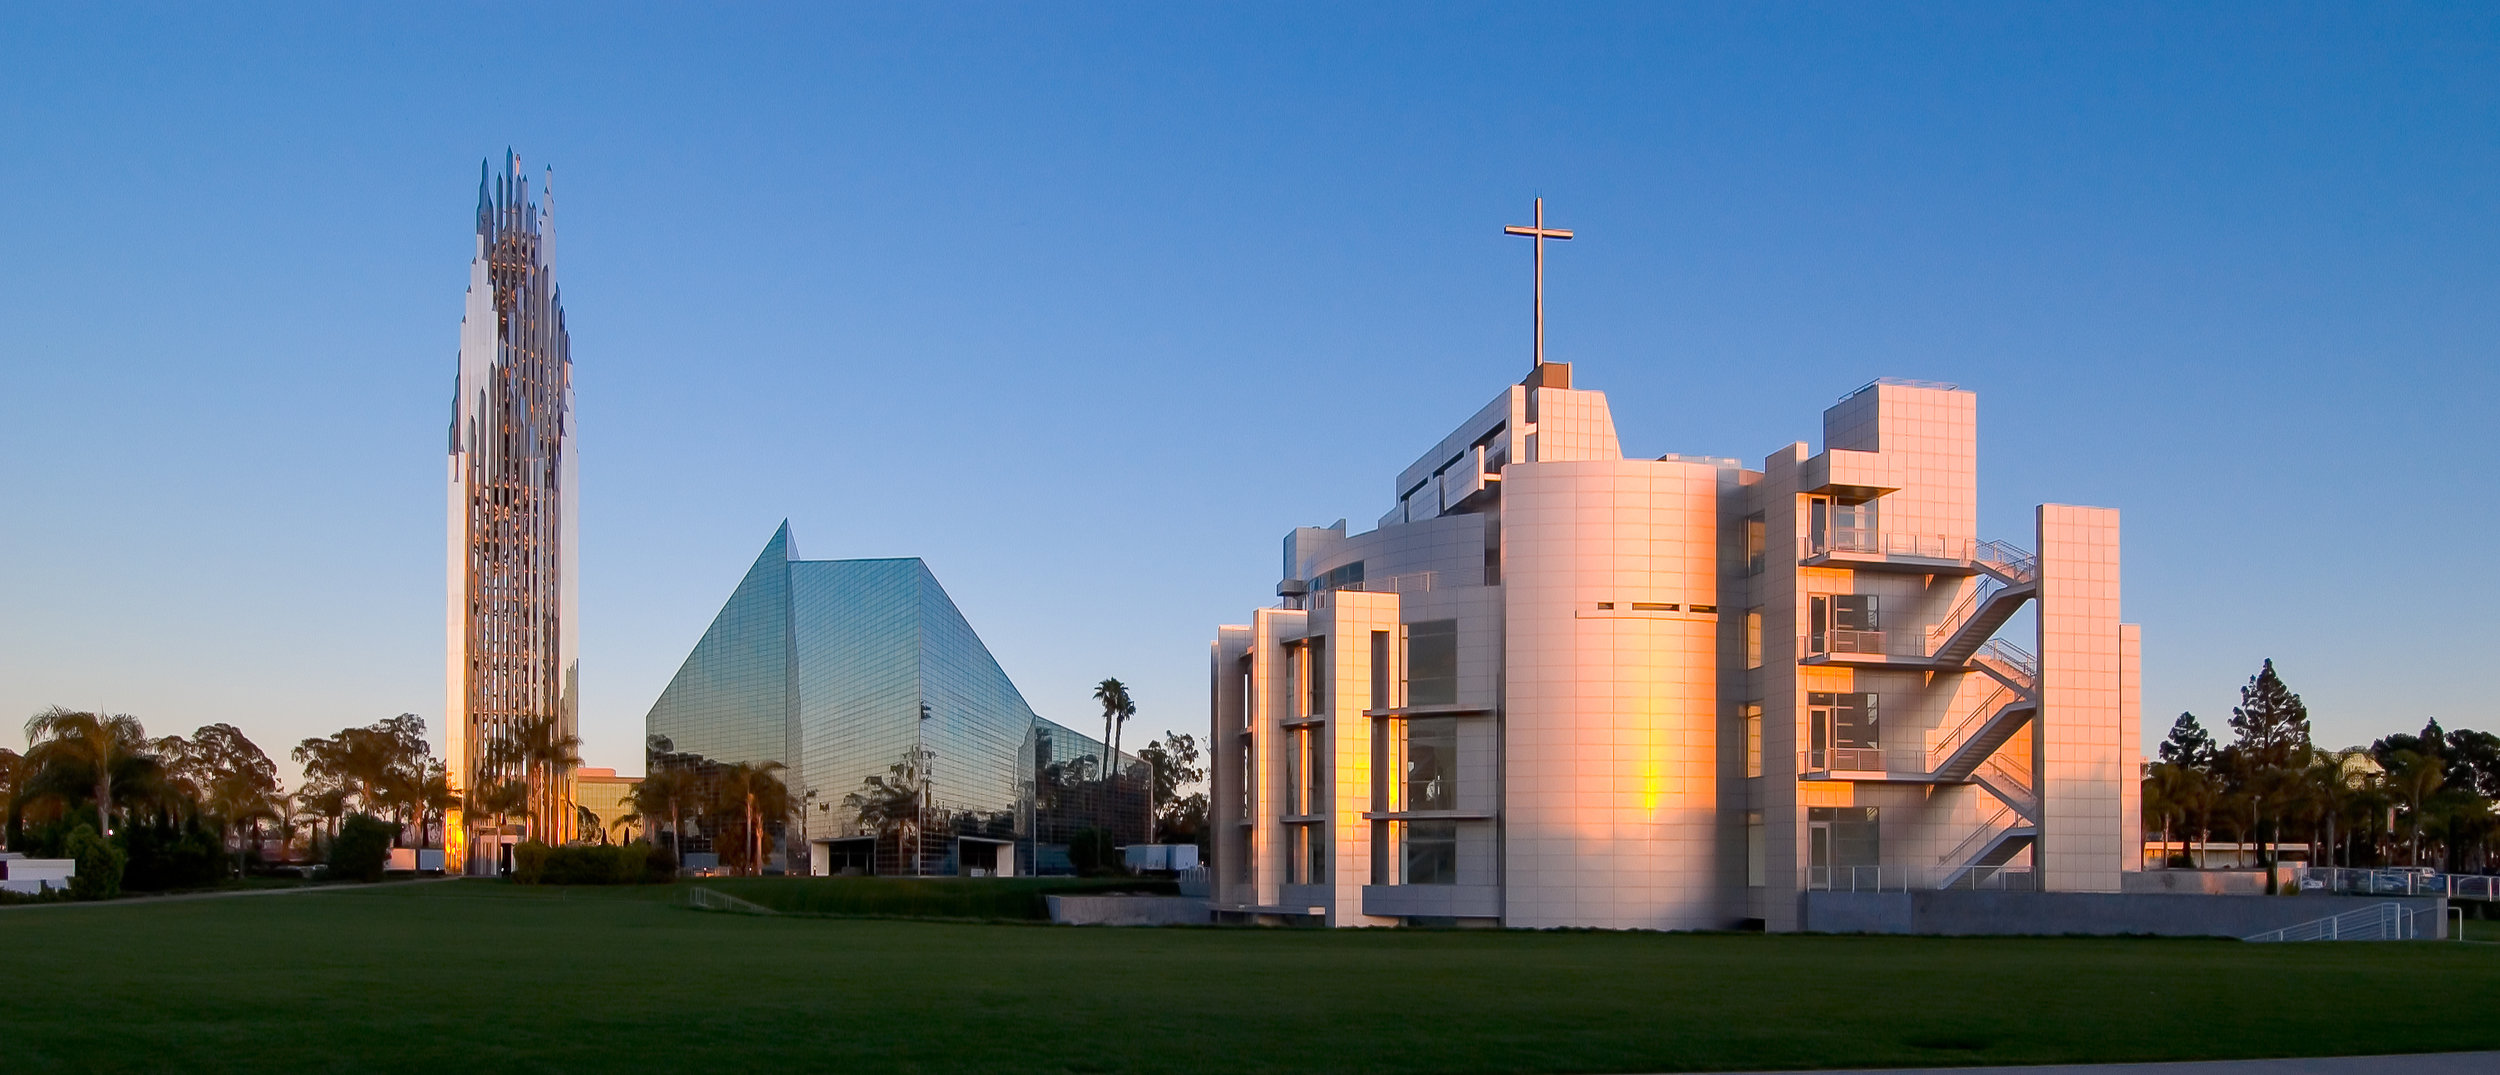 001 Christ Cathedral.jpg